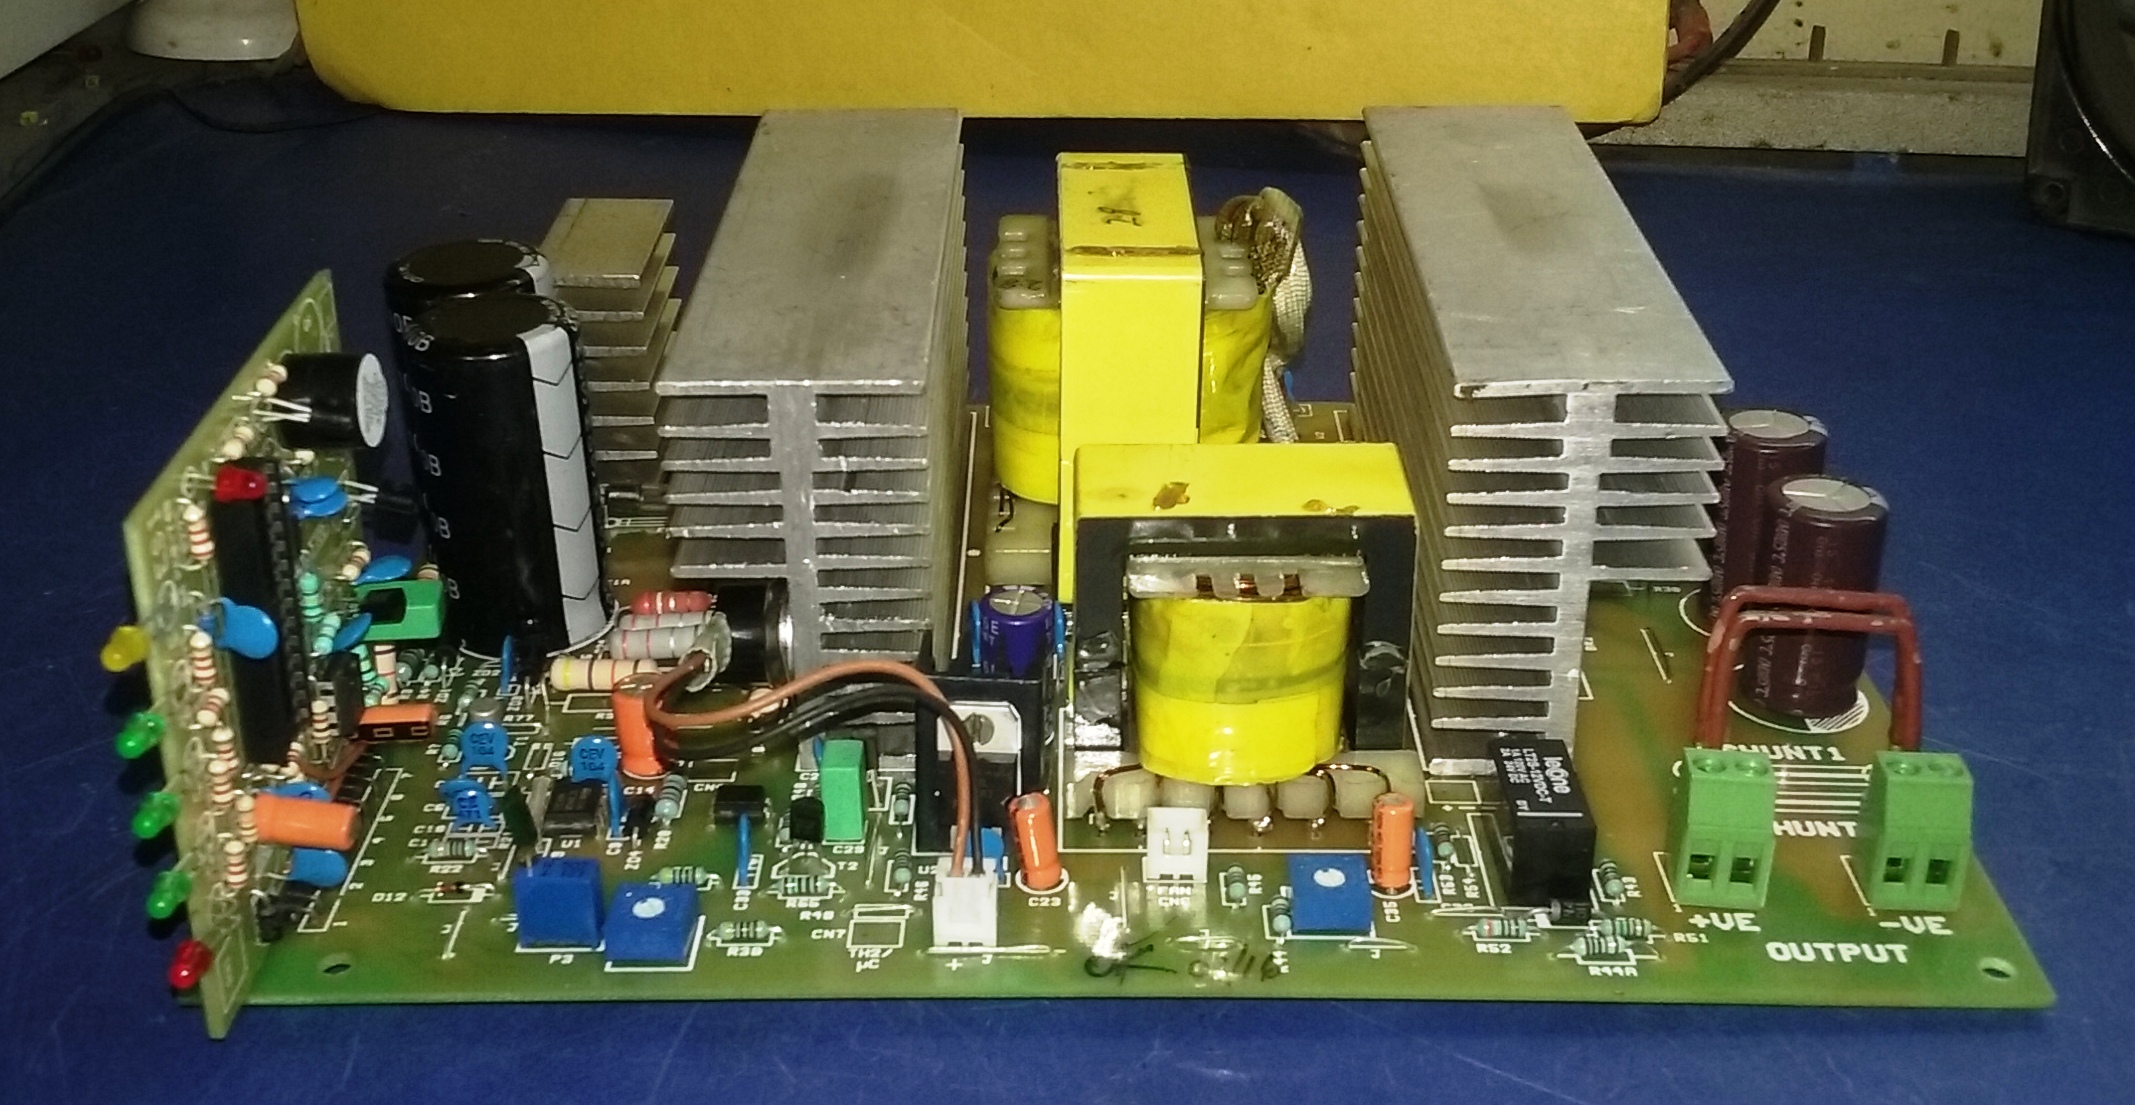 Smps Battery Charger Schematic Diagram Electrical Wiring Diagrams Cell Phone Circuit Fsez1307 Electro Service India Mobile